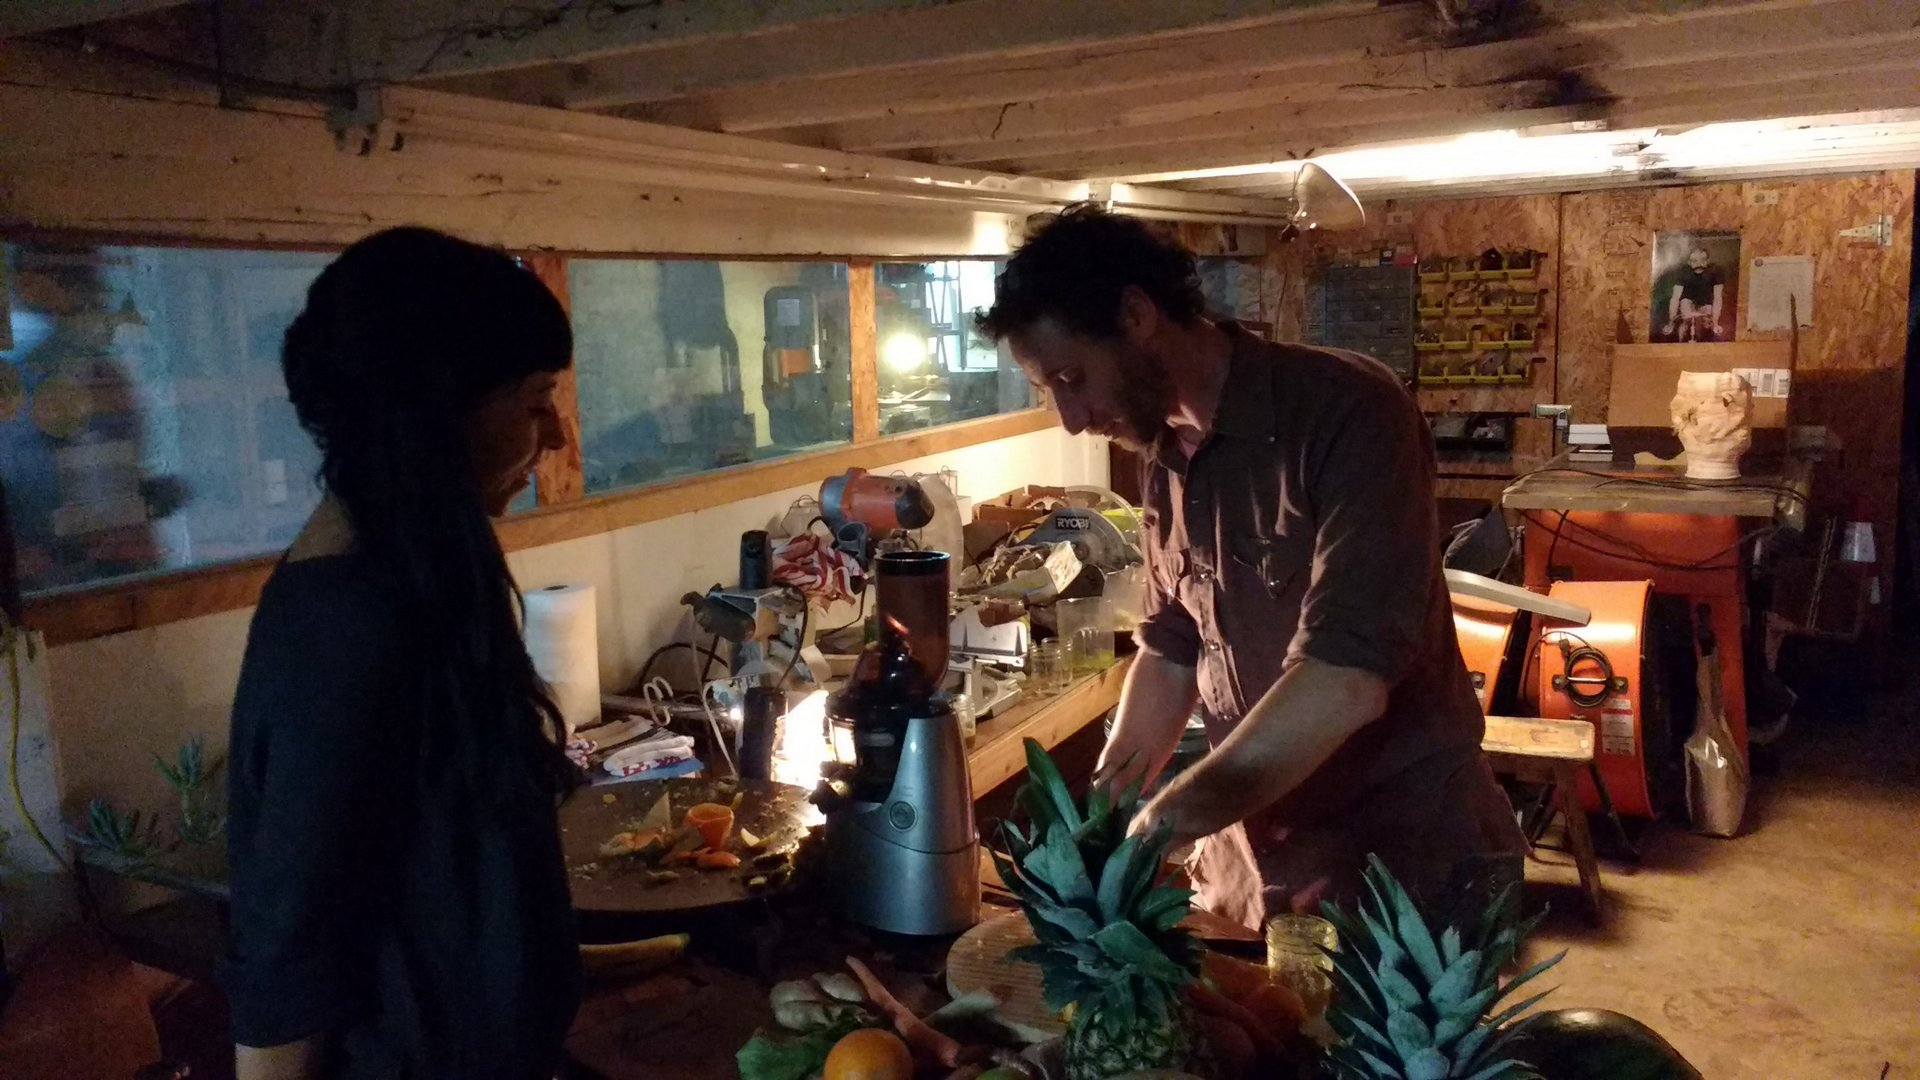 Maccabee Shelley making juice for, and sharing conversation with, an attendee at Dirtmaking